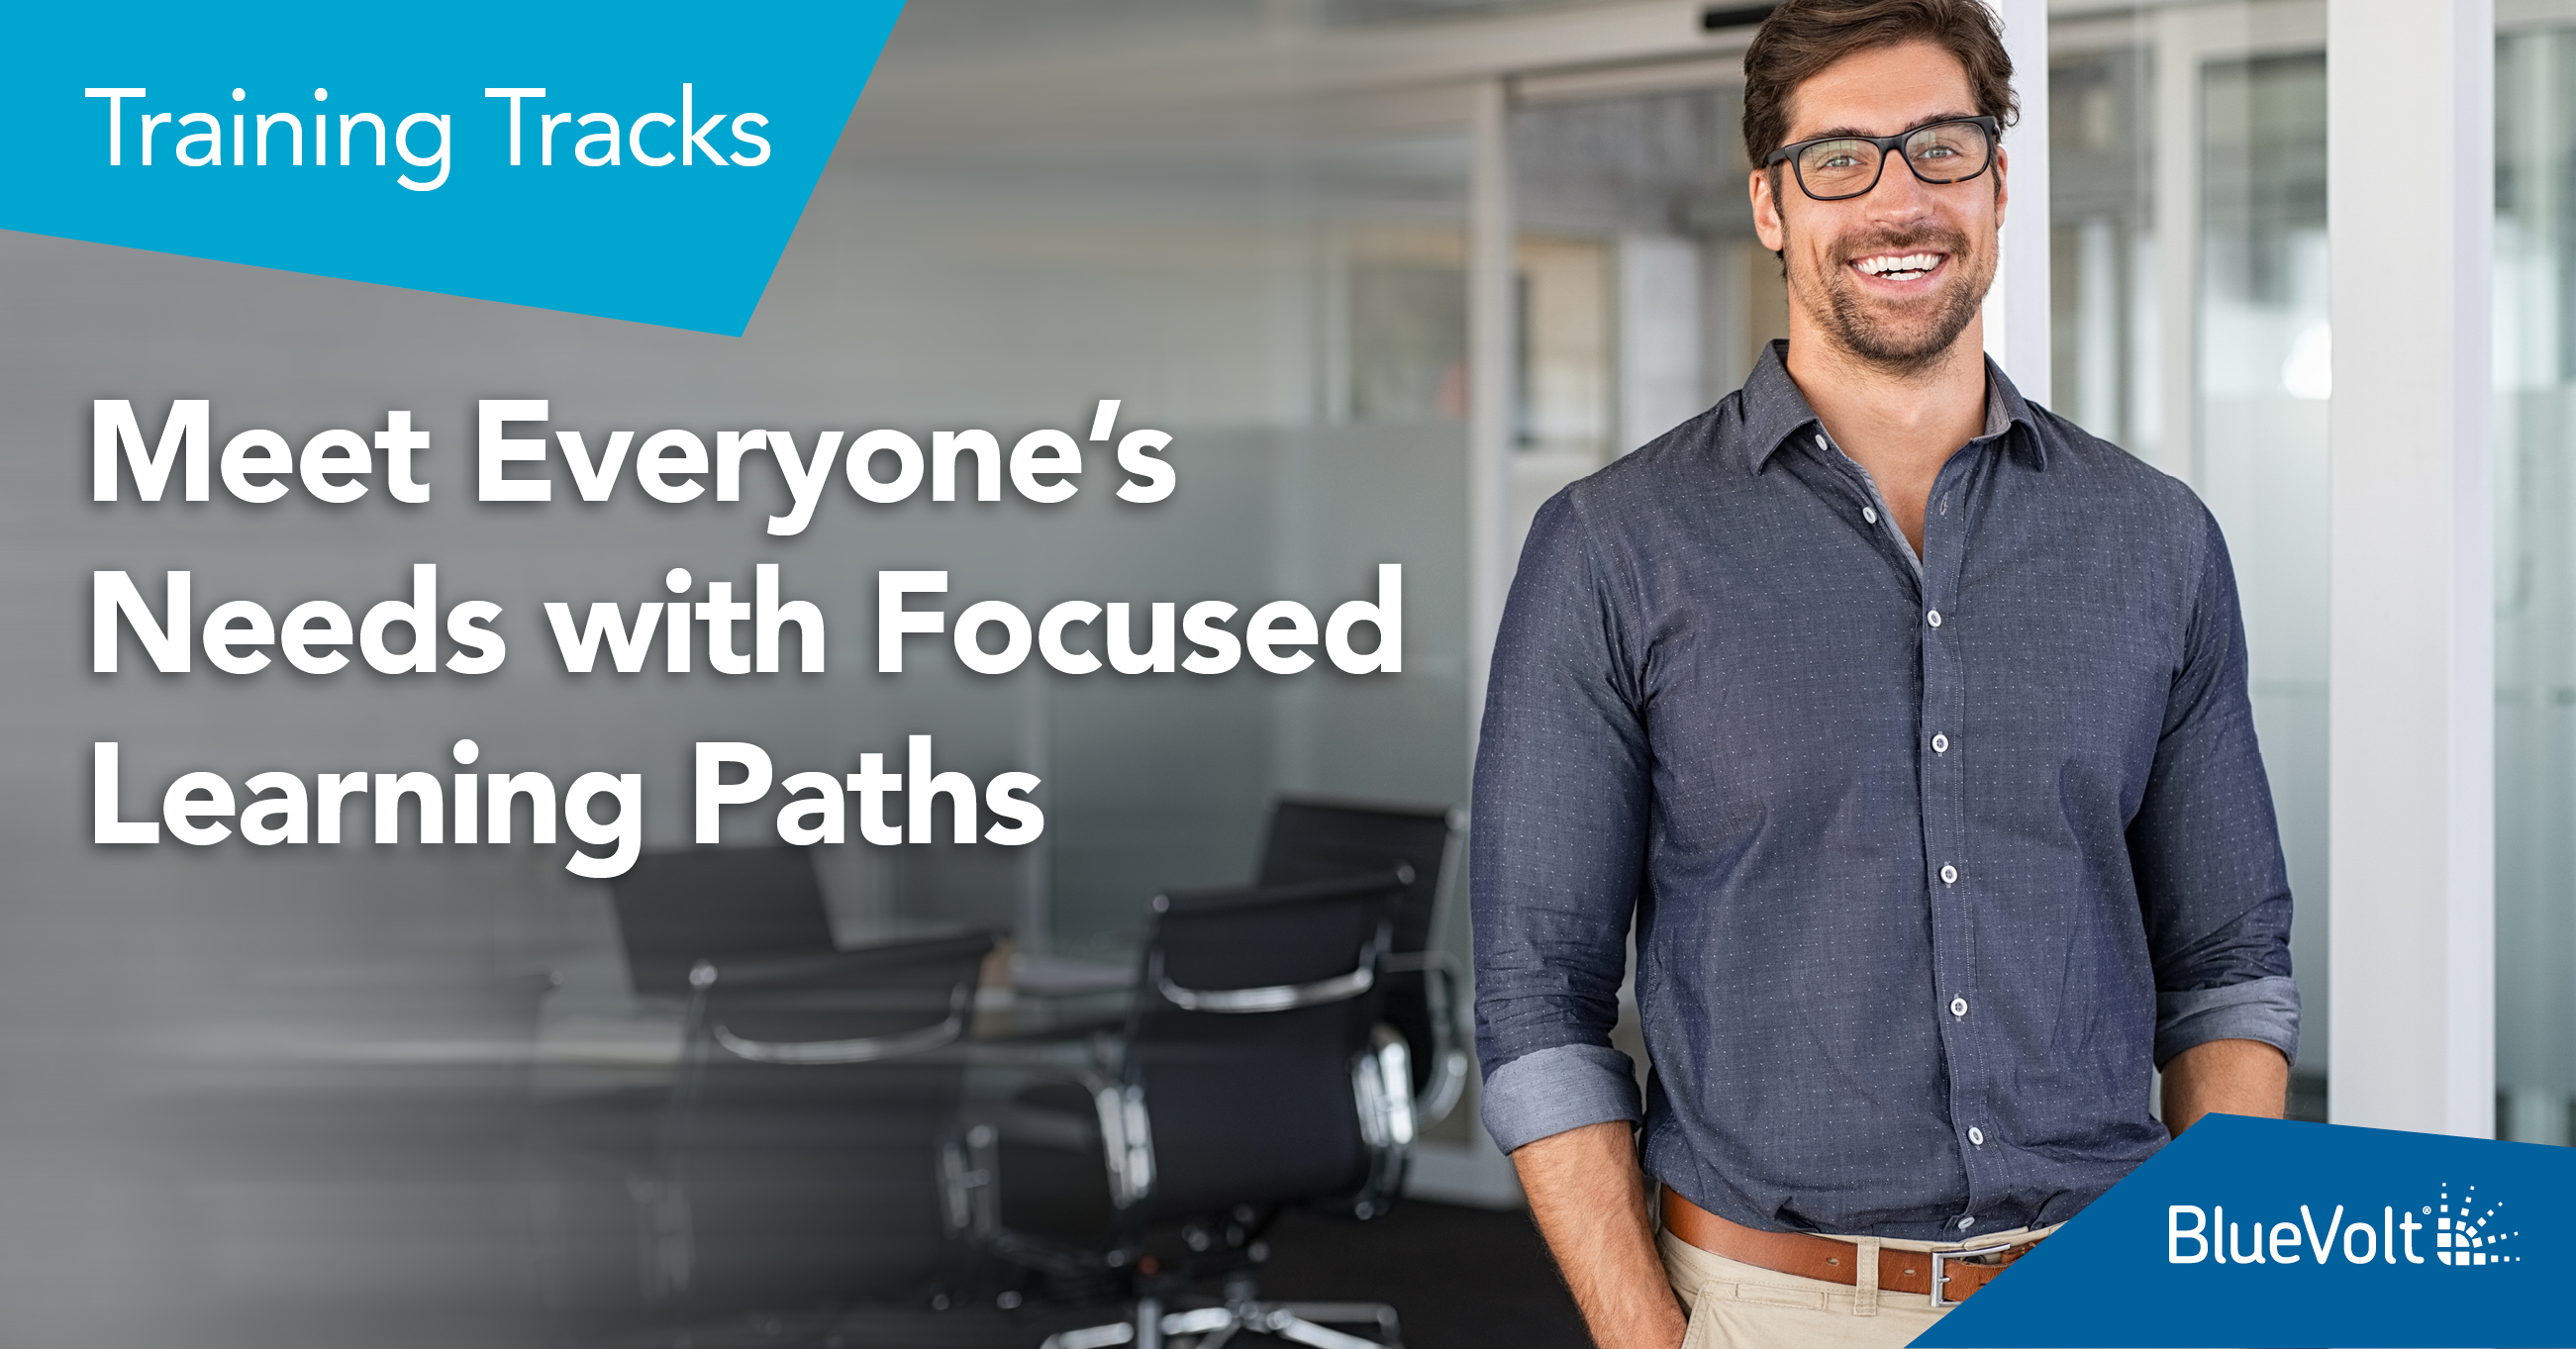 Training Tracks: Flexible and Efficient Tailored Learning Paths to Meet Unique Career Objectives